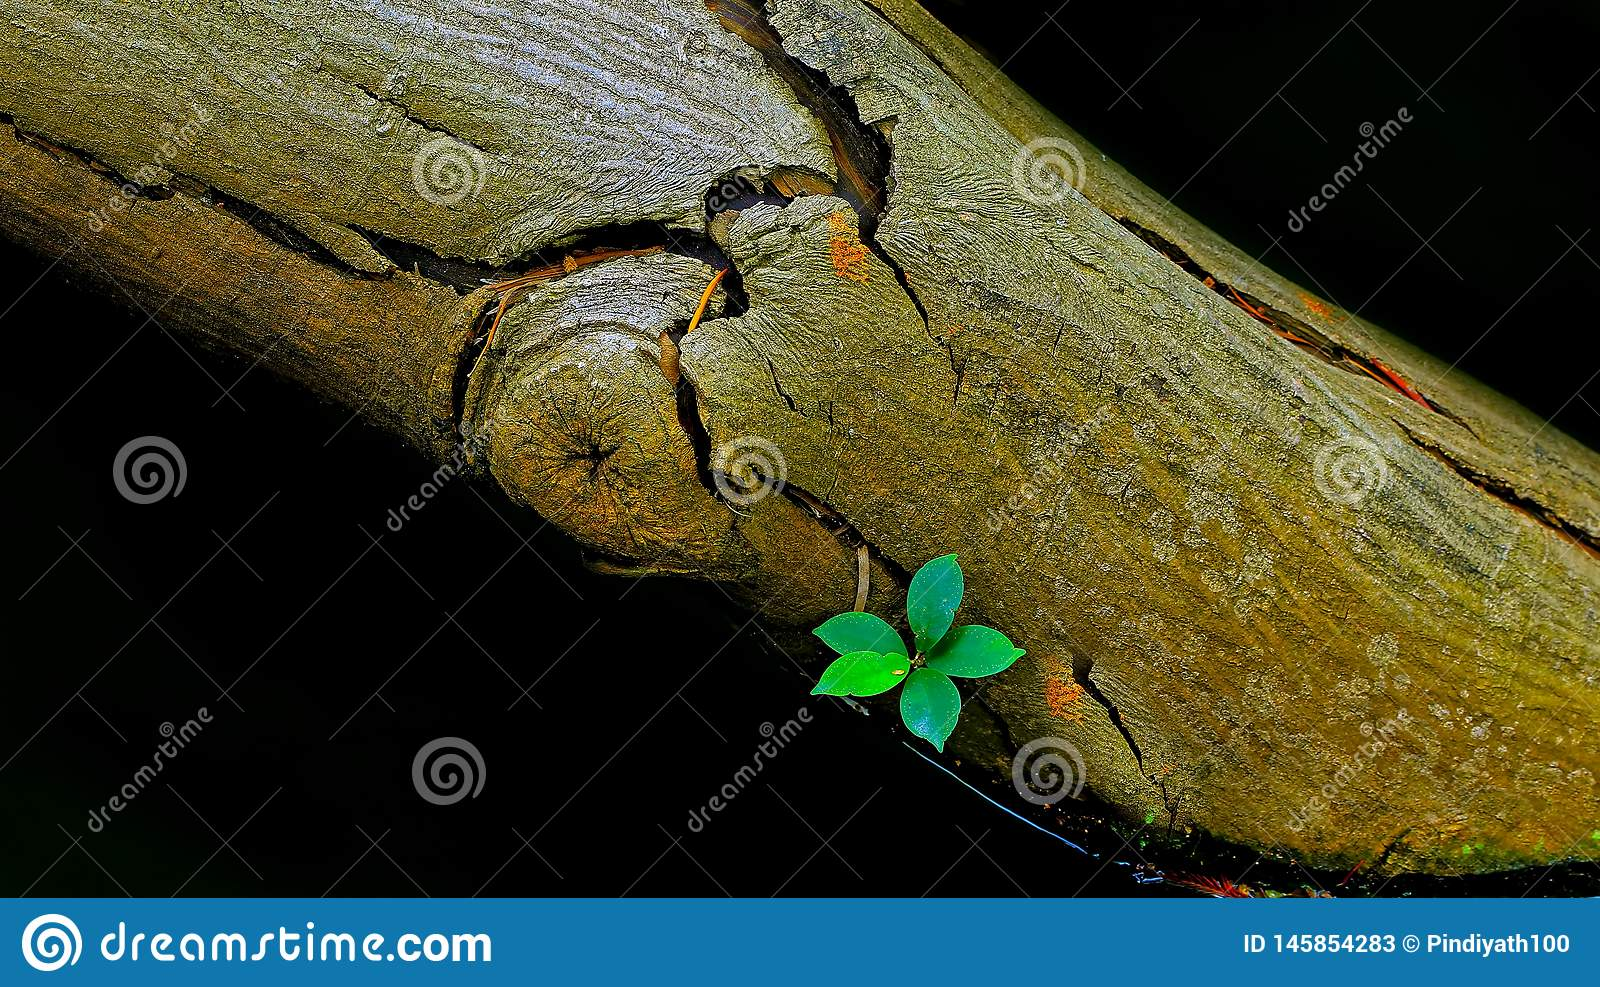 Life after death : sprout on a dead tree trunk submerged in dirty water